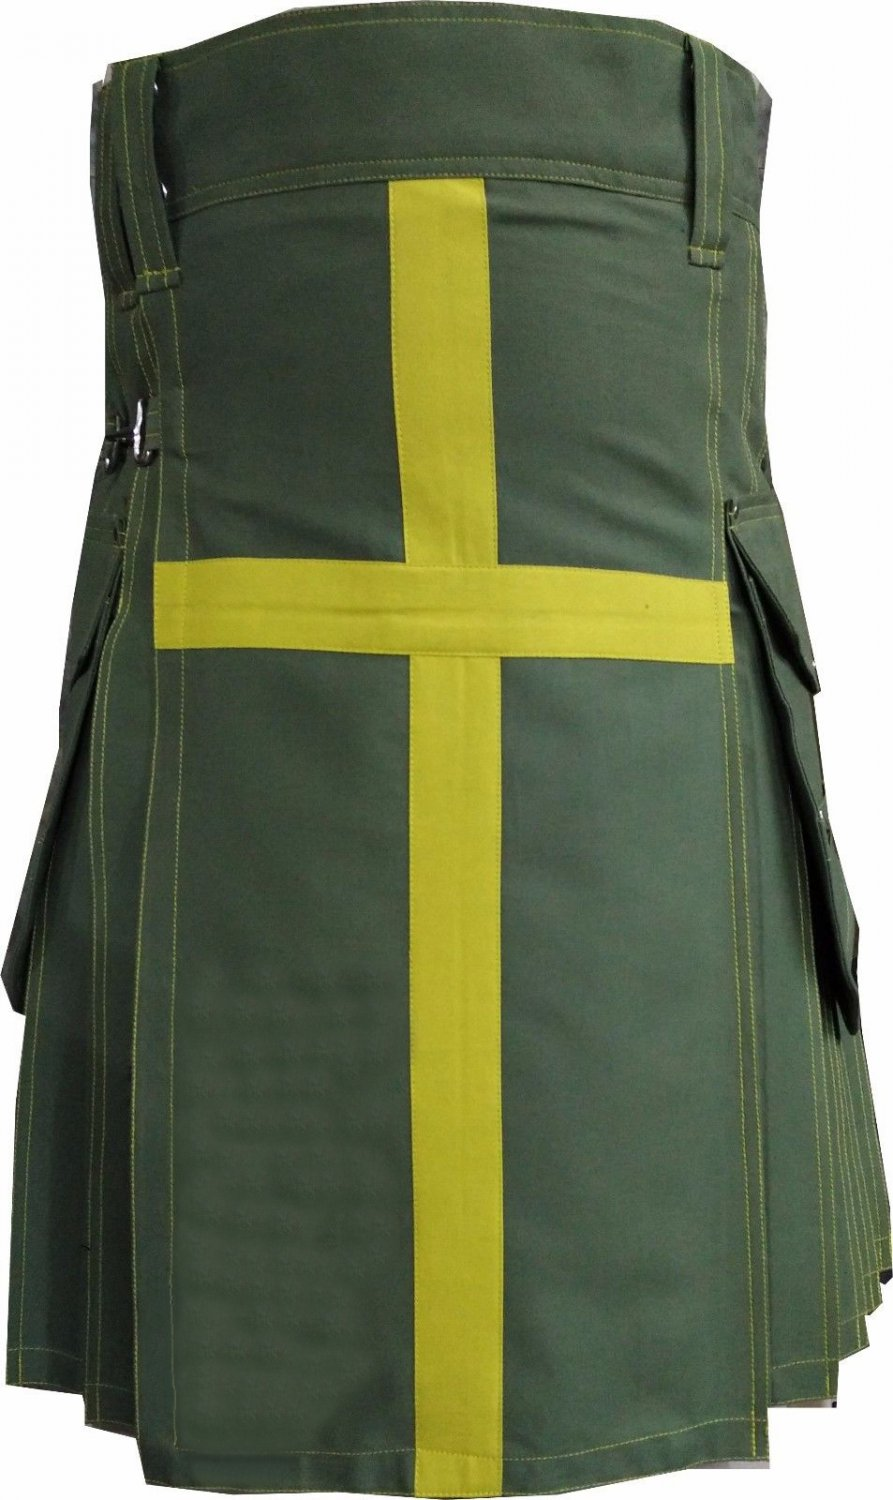 NEW DC ACTIVE MEN OLIVE GREEN AND YELLOW HANDMADE UNISEX COTTON UTILITY KILT SIZE 34